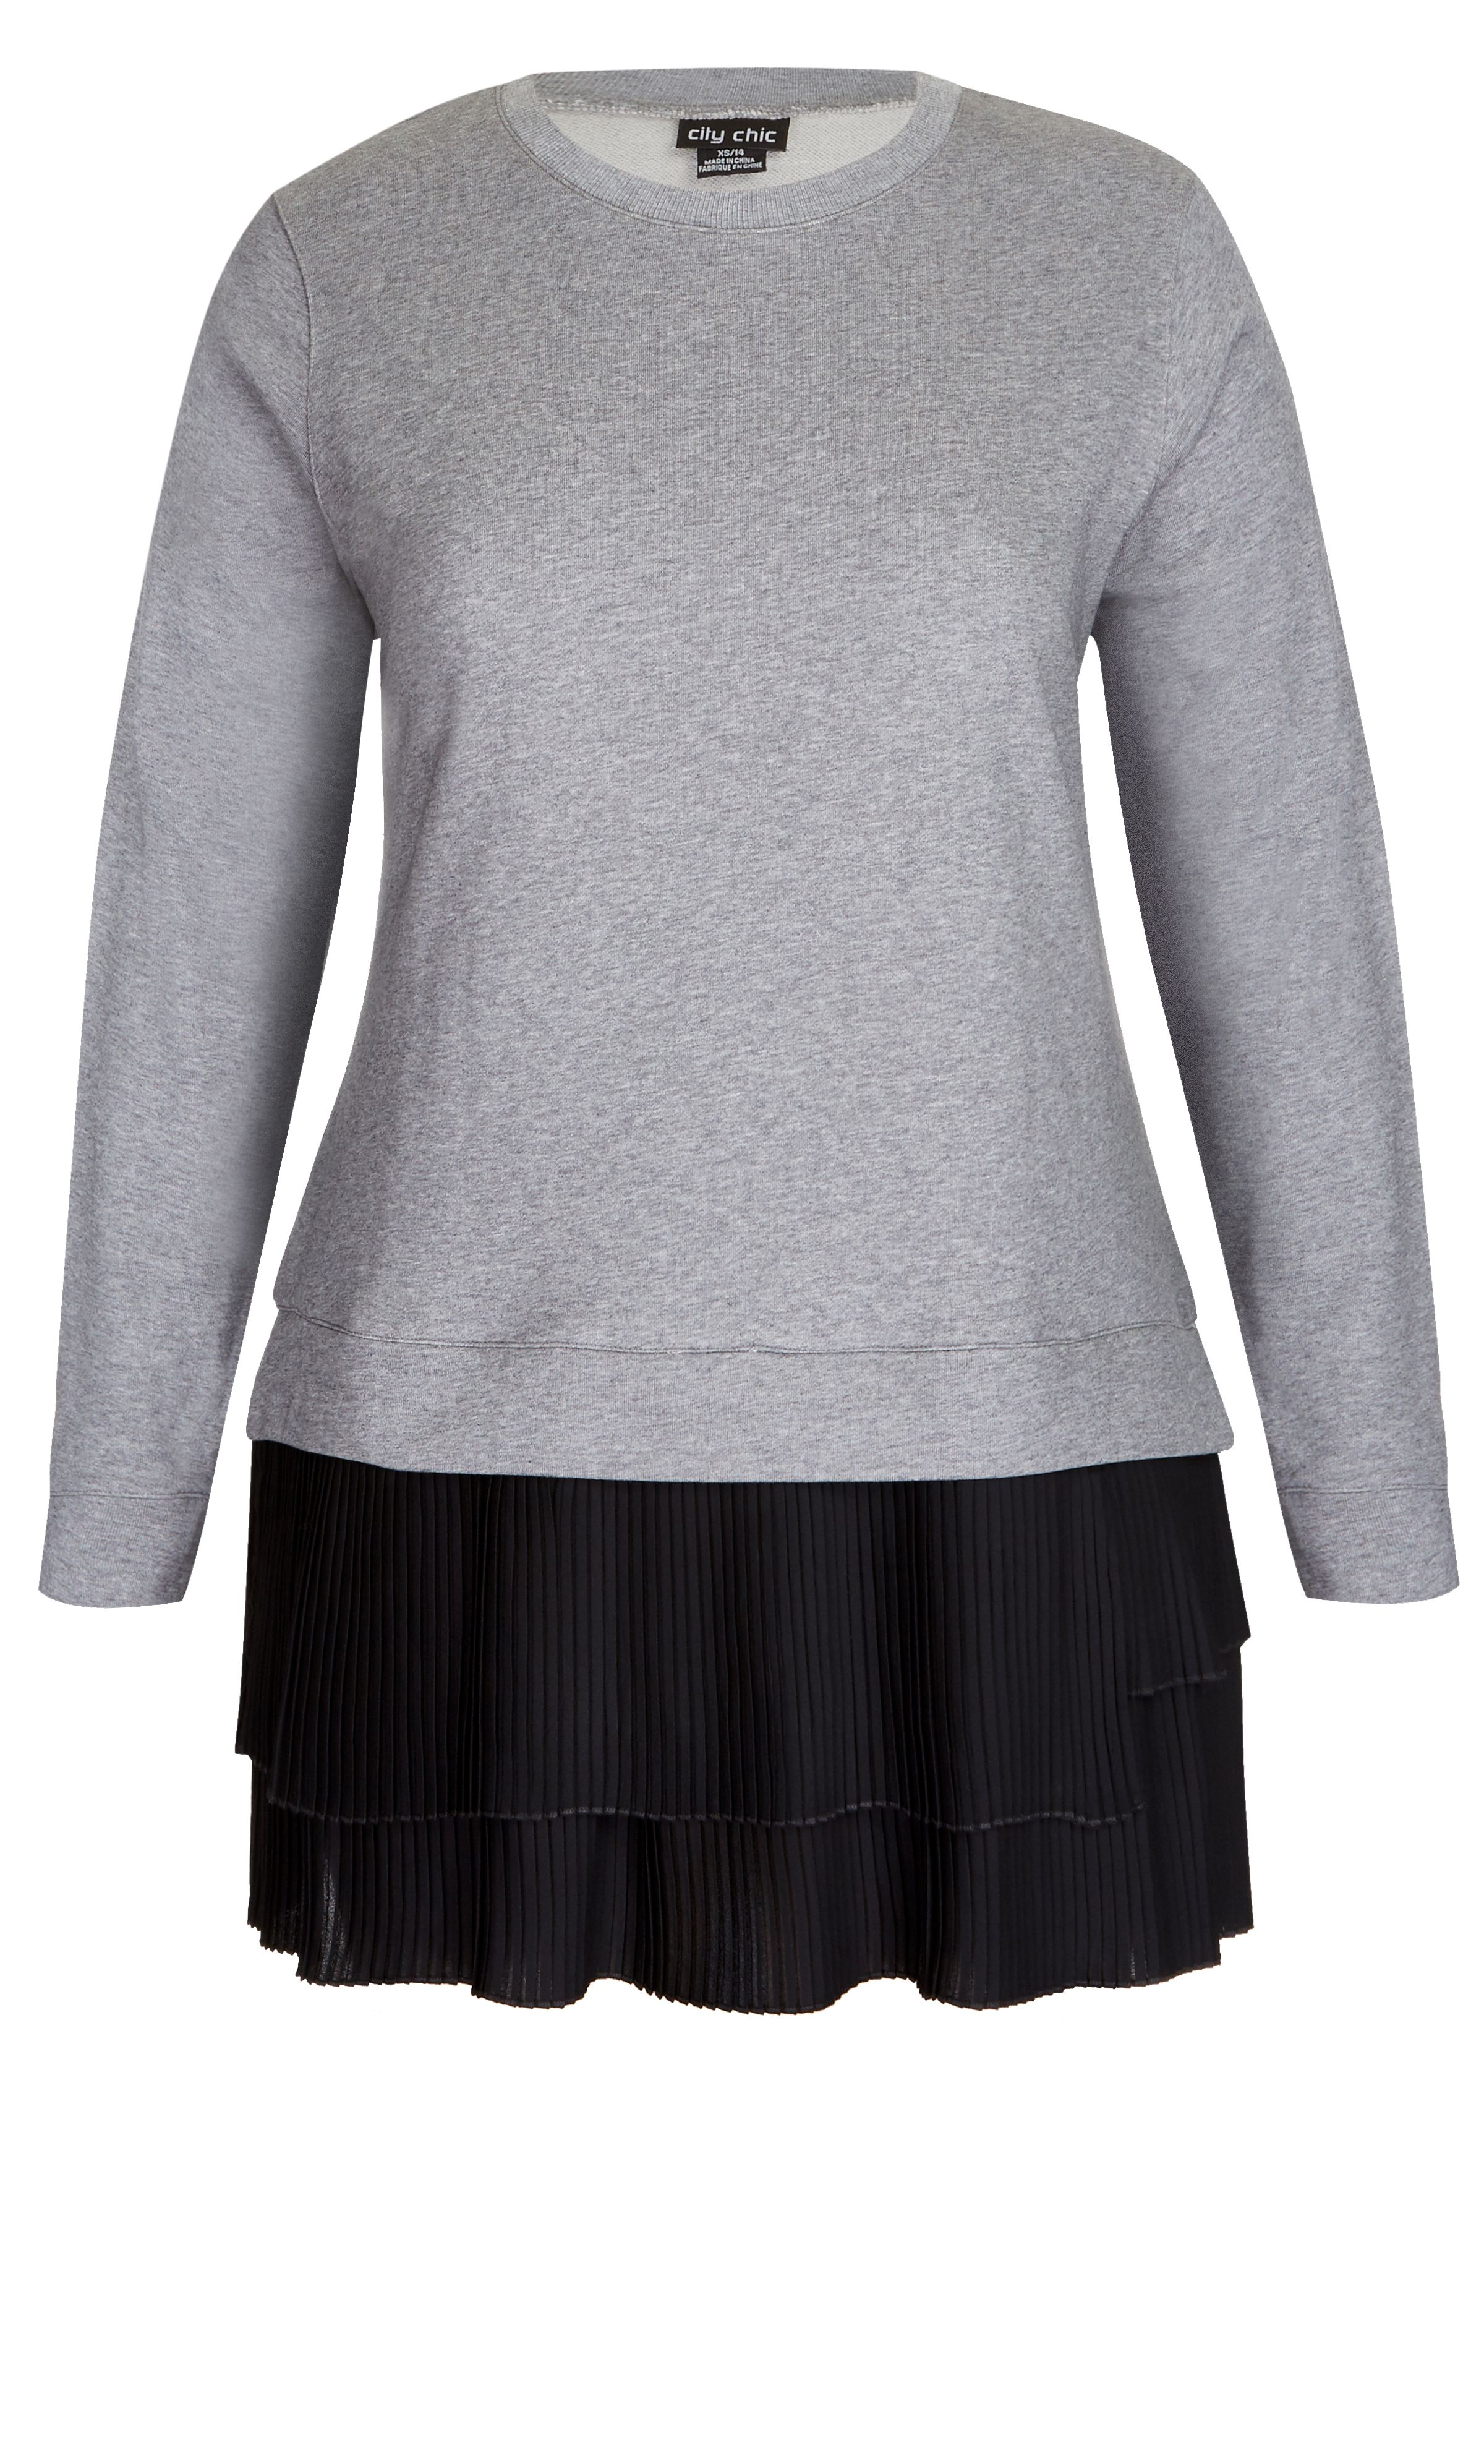 5826b0b360f Style By Trend  London Edit by City Chic - JUMPER LADY AXEL  citychic   citychiconline  newarrivals  ootd  plussize  plussizefashion  psootd